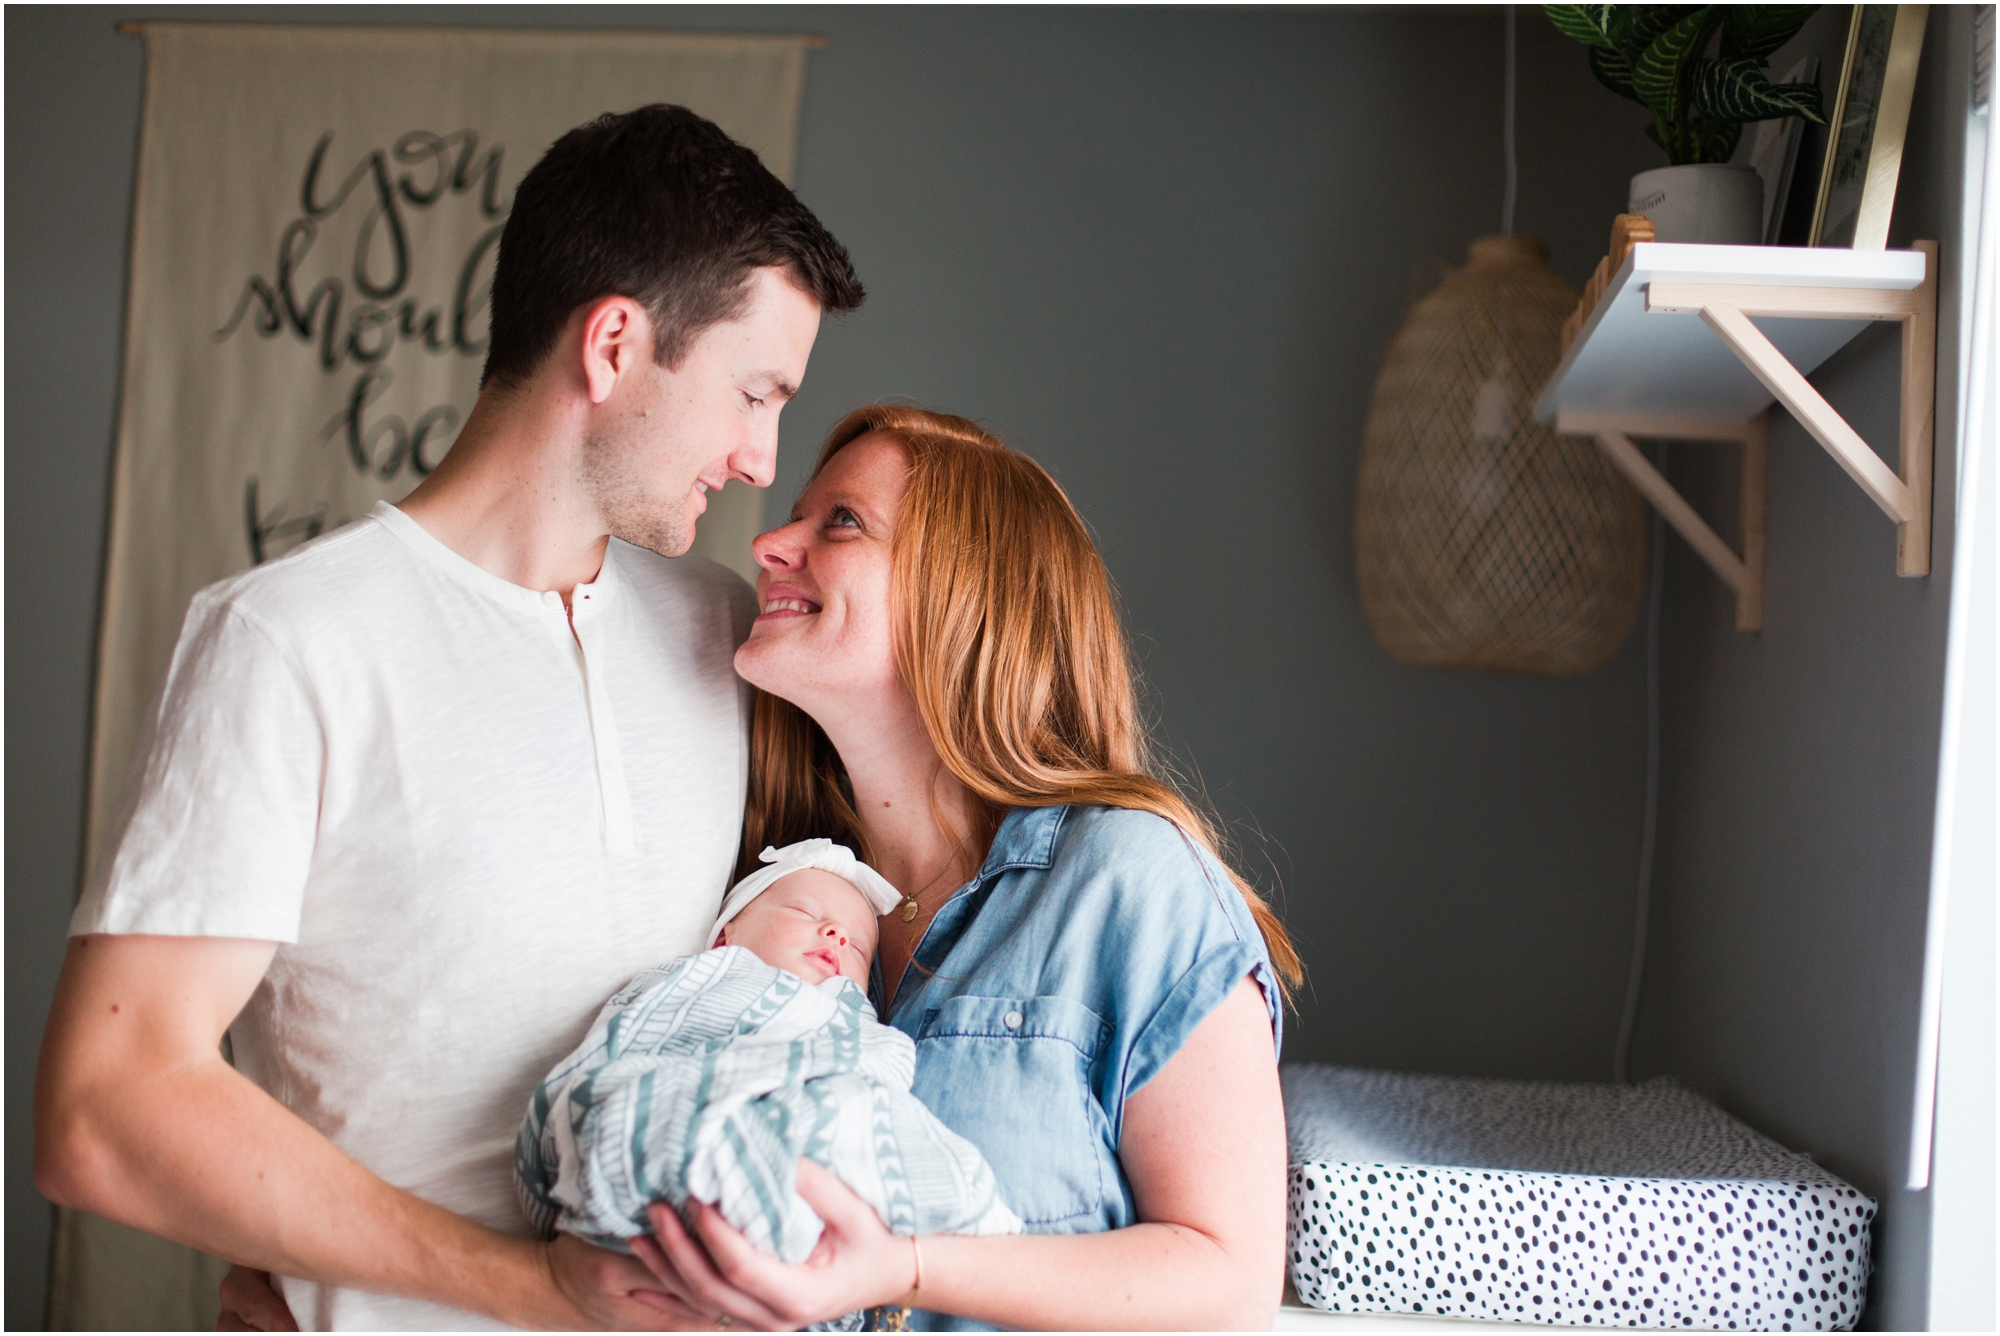 Seattle lifestyle newborn photos by Briana Calderon Photography based in the Greater Seattle & Tacoma, WA_0723.jpg